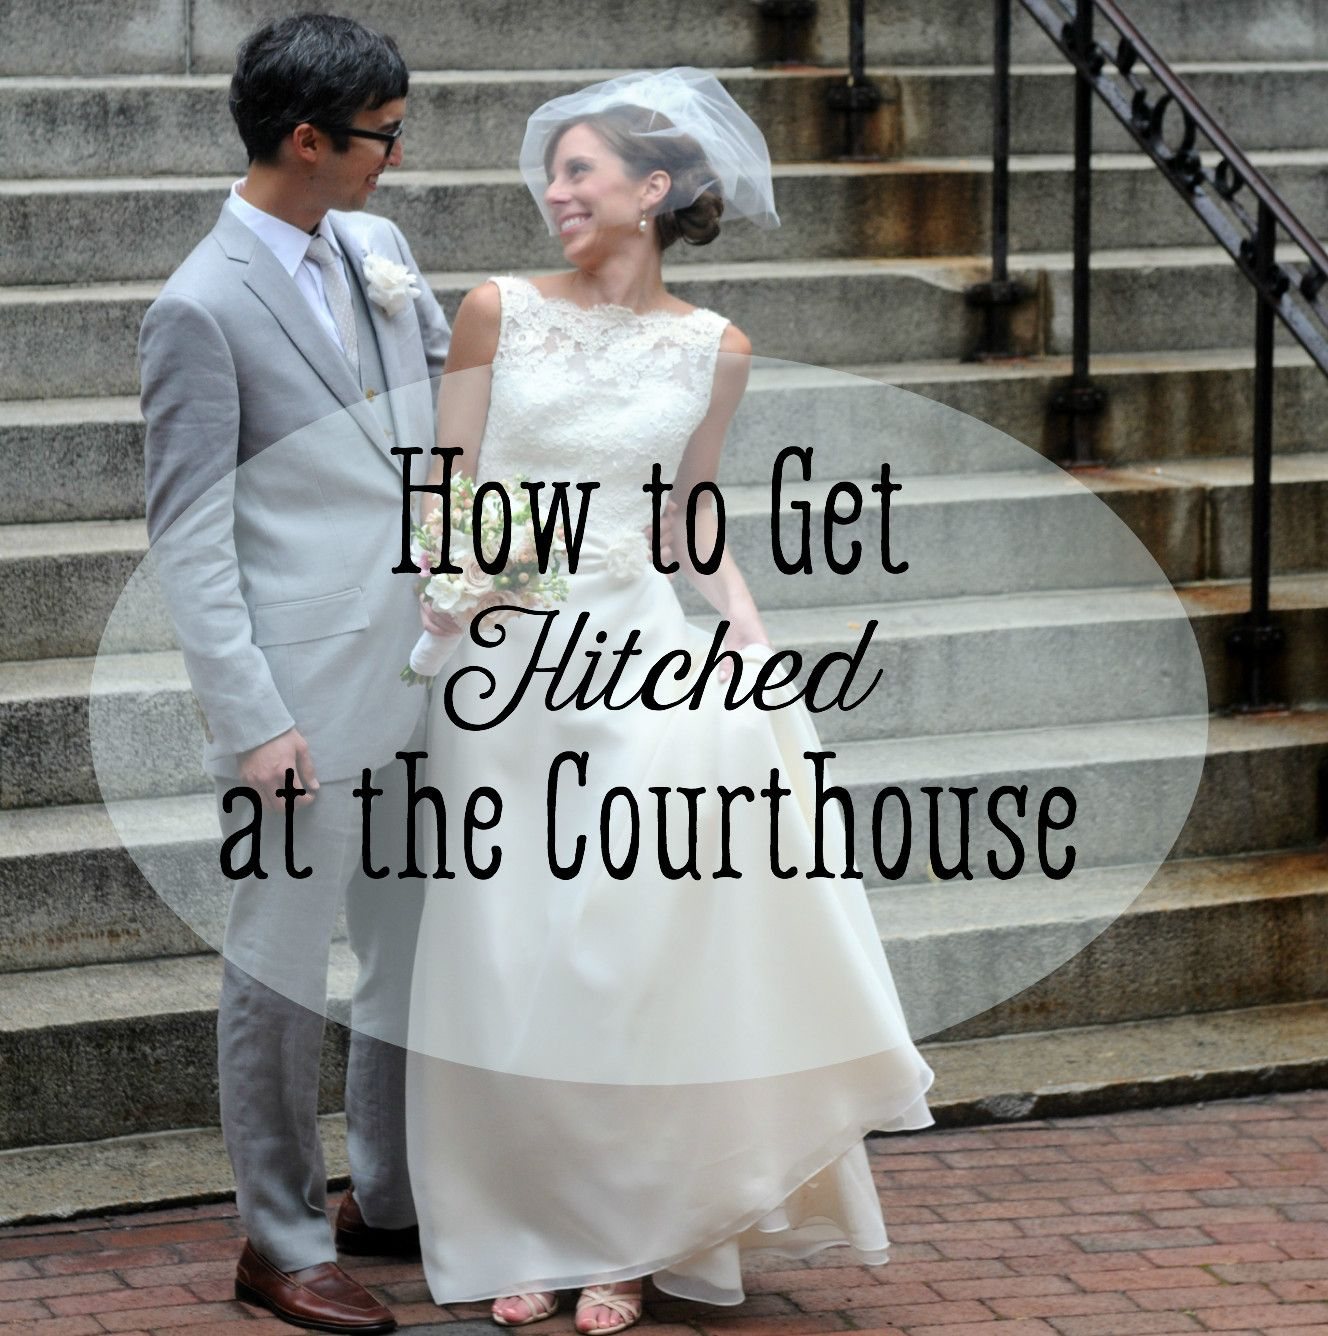 189c319920f18a422528a951c0a11bec - How Much Is To Get Married At The Courthouse